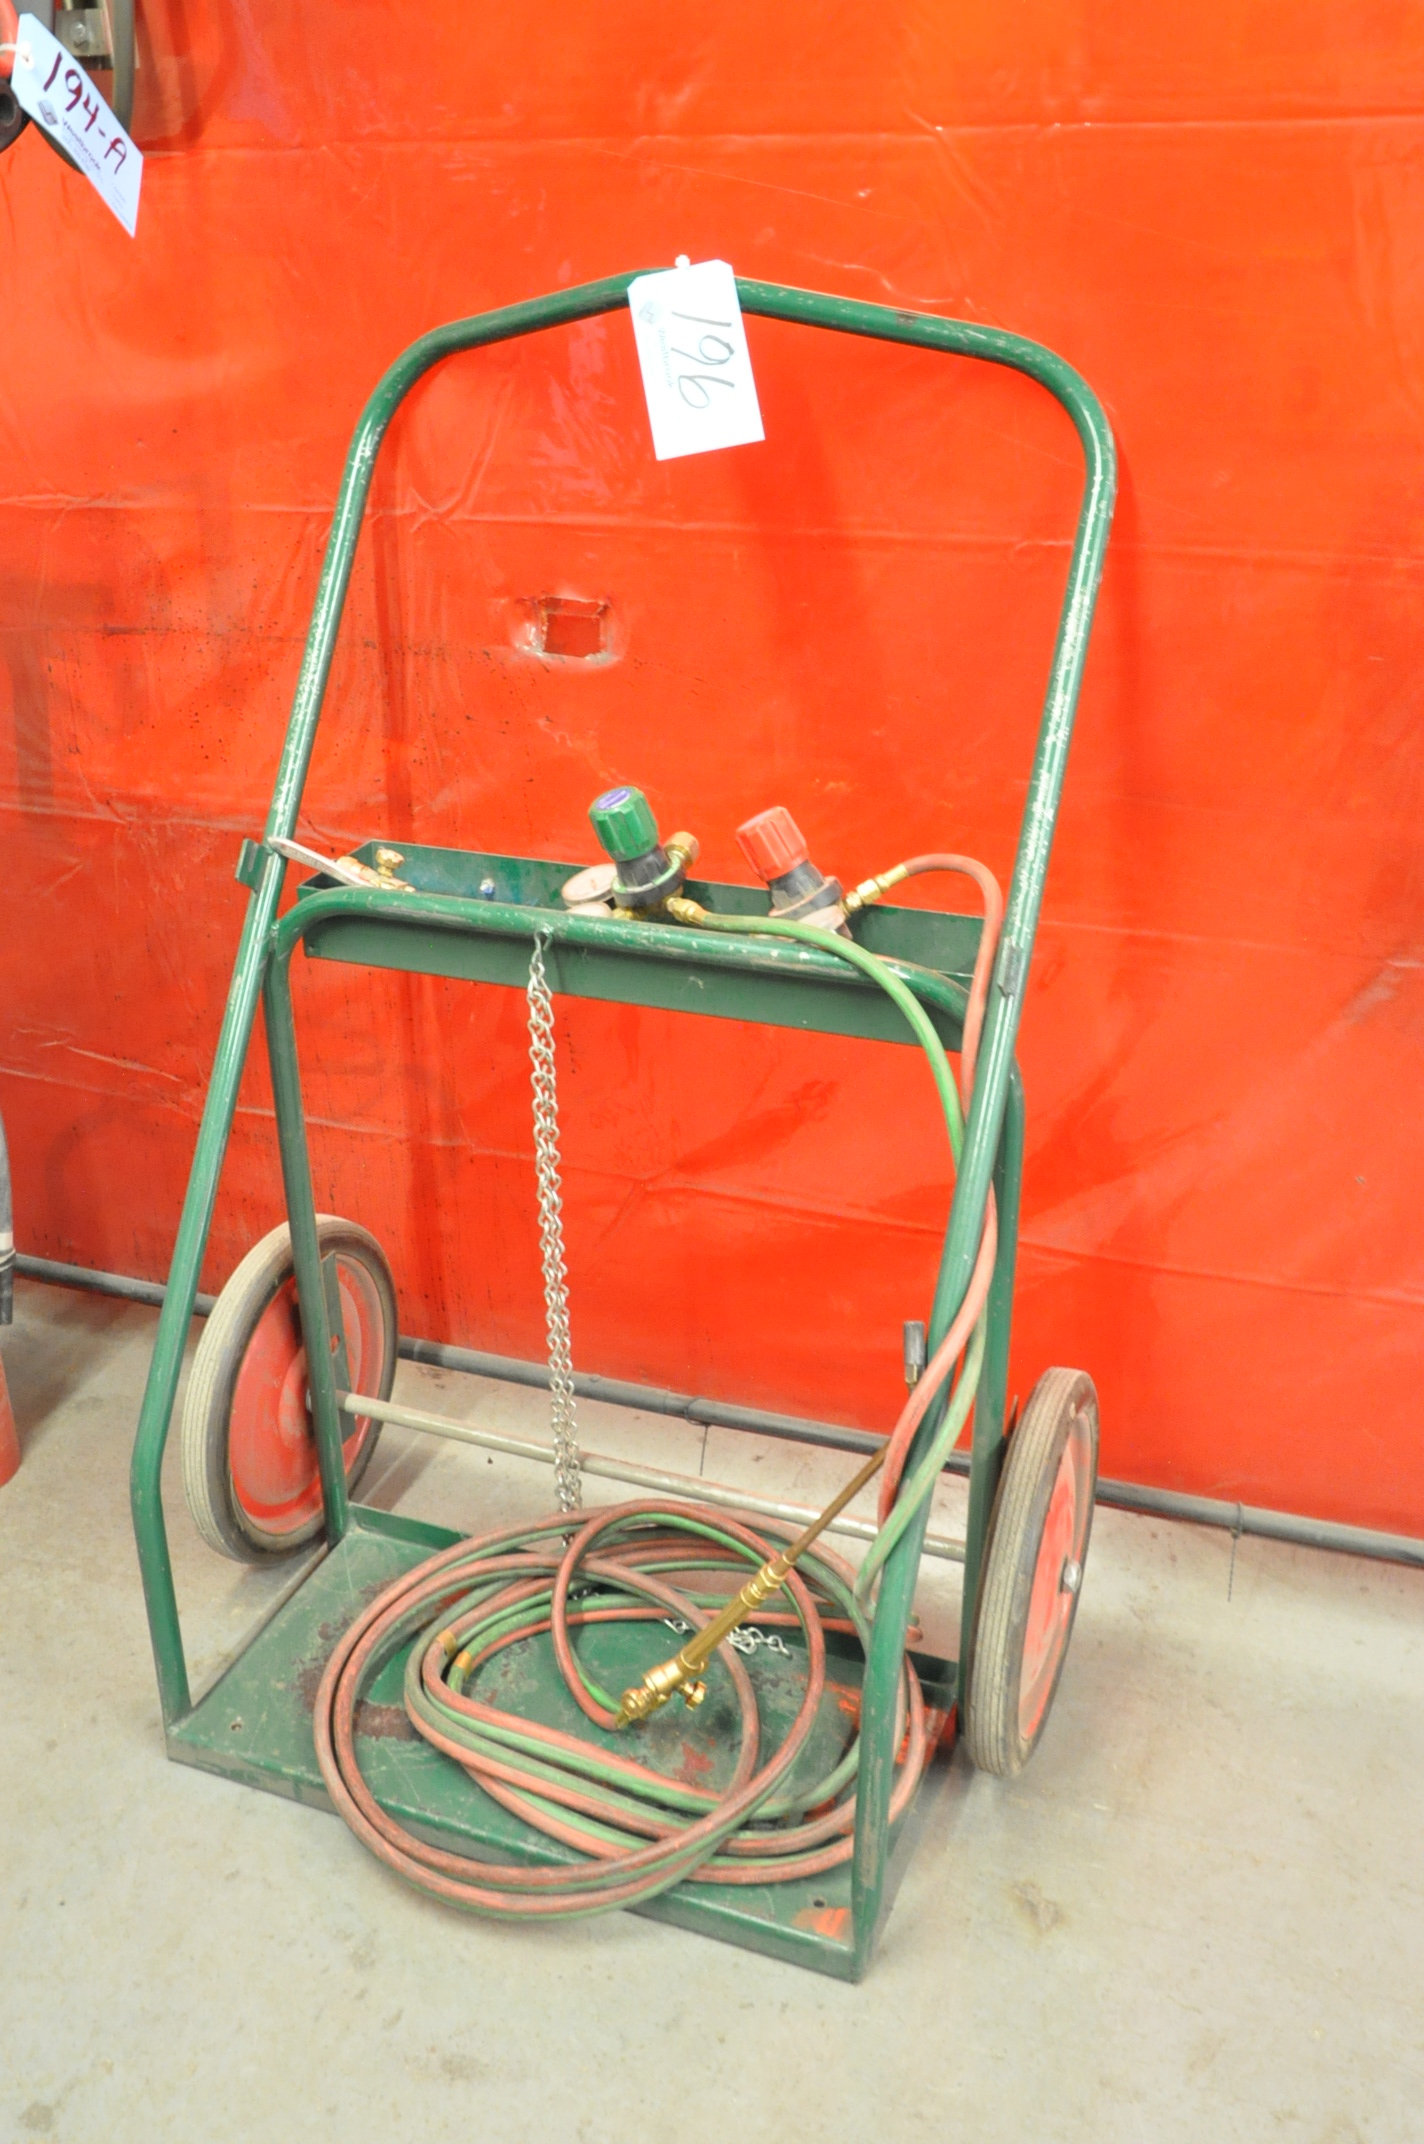 Oxygen/Acetylene Cart with Torch, Hose and Gages